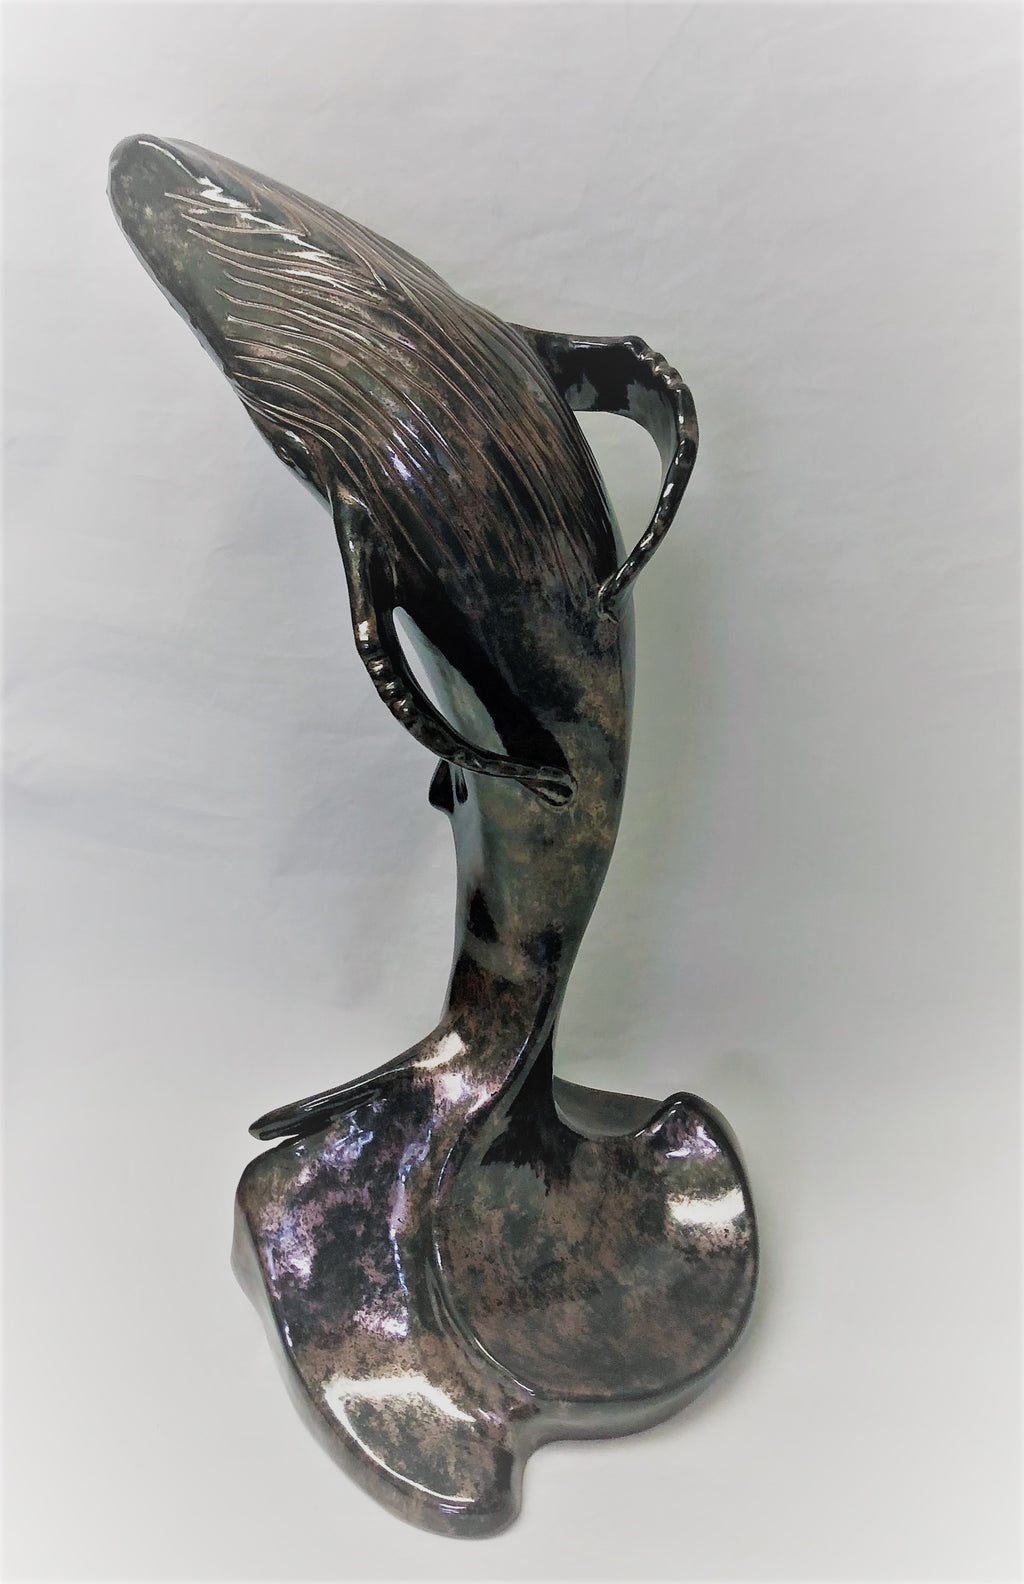 Breaching Out - Black Crackle Ceramic Sculpture